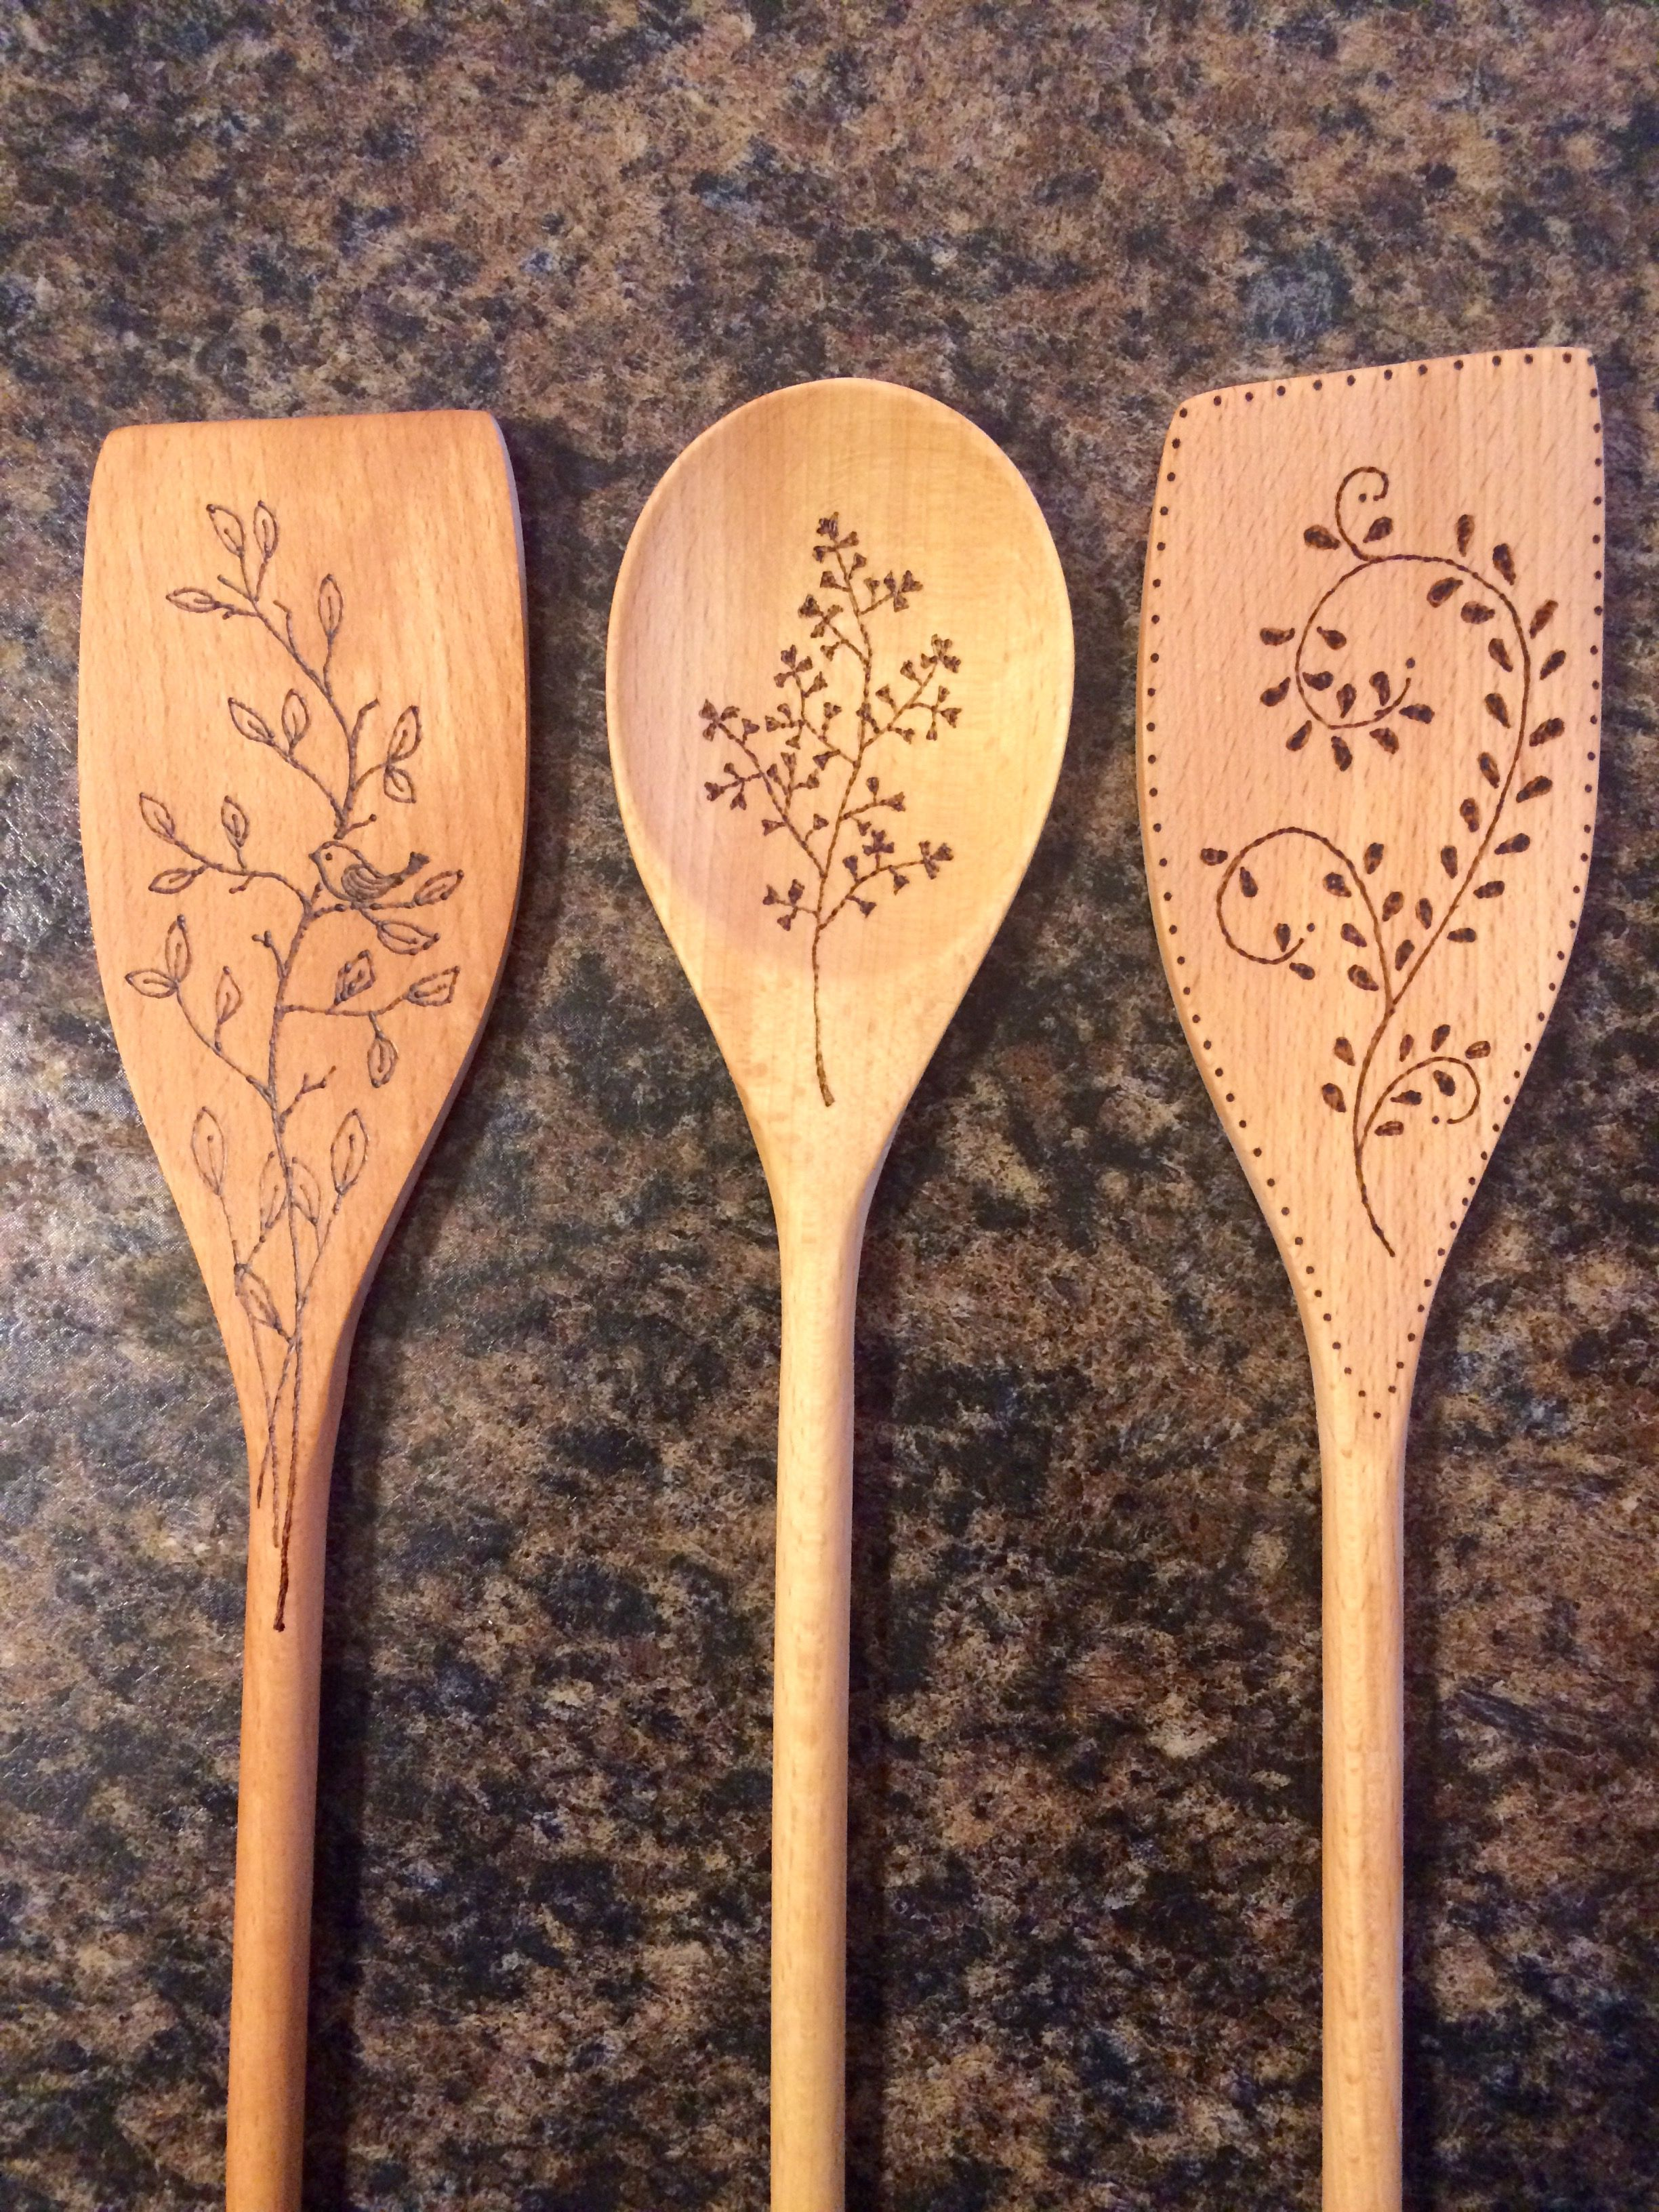 Wood Burning Spoons Family Prayer /& Farm Living 4 Wooden Spoons Coffee Stained